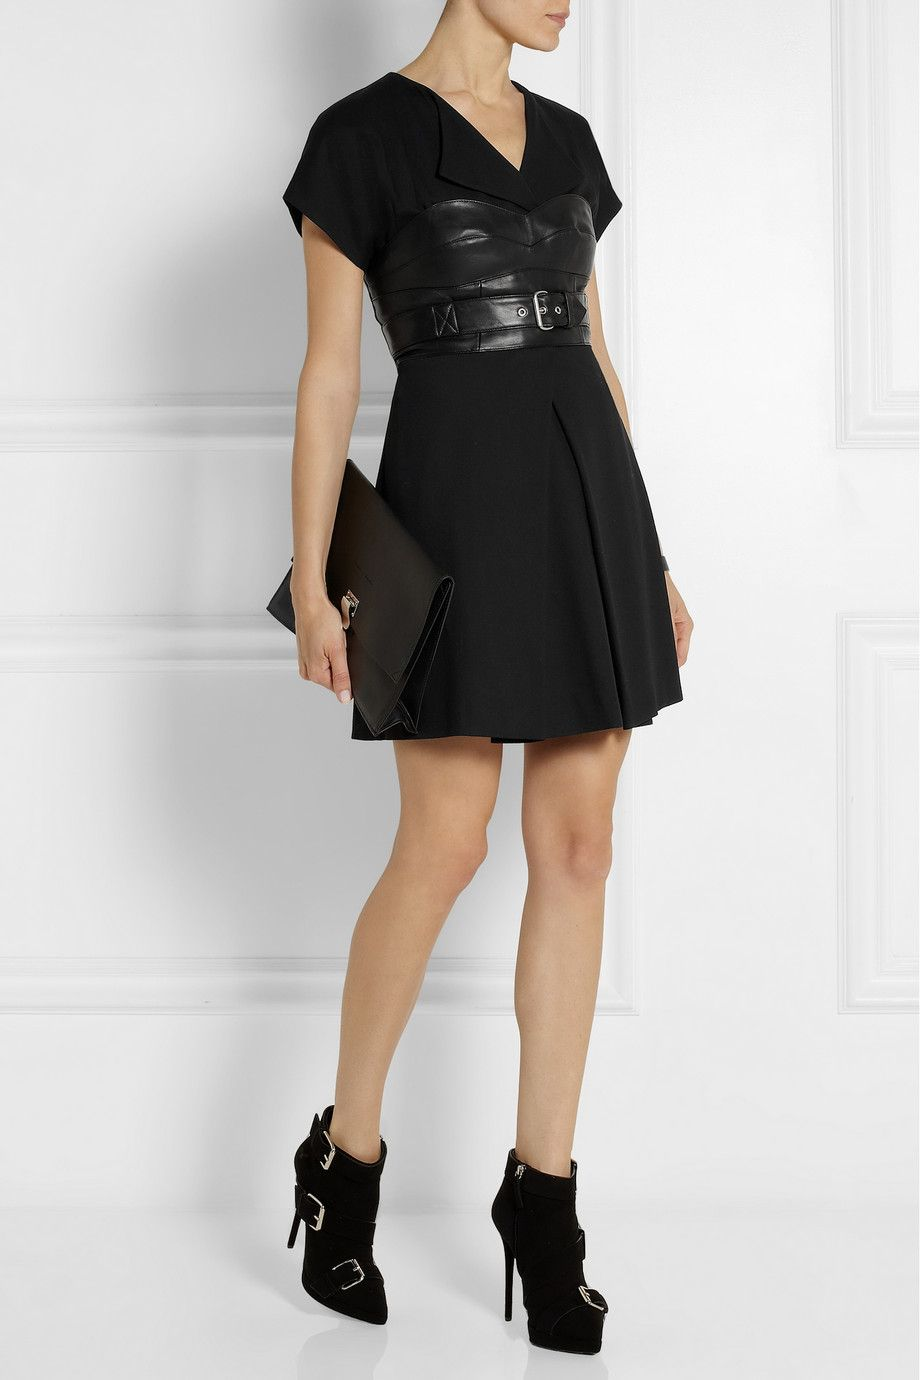 872516bf1 McQ Alexander McQueen outfit. MCQ ALEXANDER MCQUEEN Leather-paneled crepe mini  dress ...